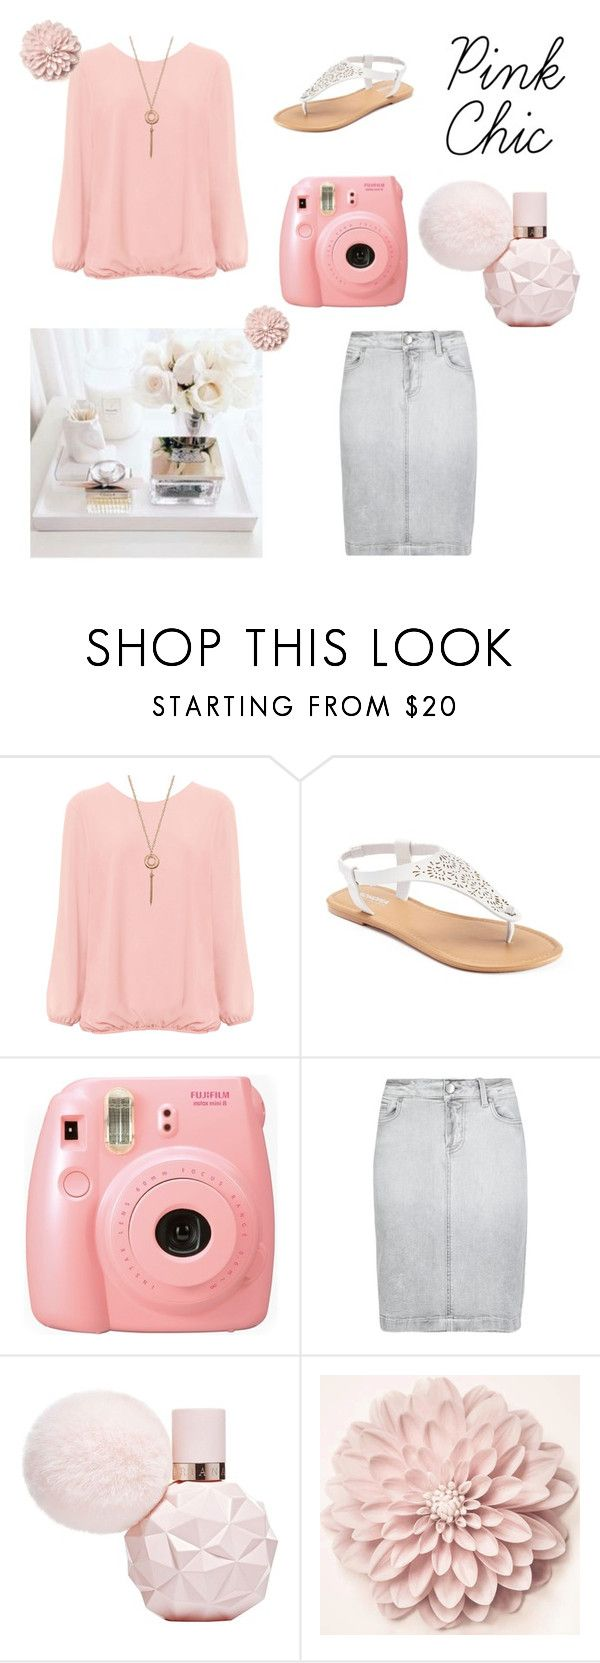 """Pink Chic ( read D box please)"" by missbeth1897 ❤ liked on Polyvore featuring WearAll, SONOMA Goods for Life, Fujifilm, M&S, Modest, Modesty and modestly"